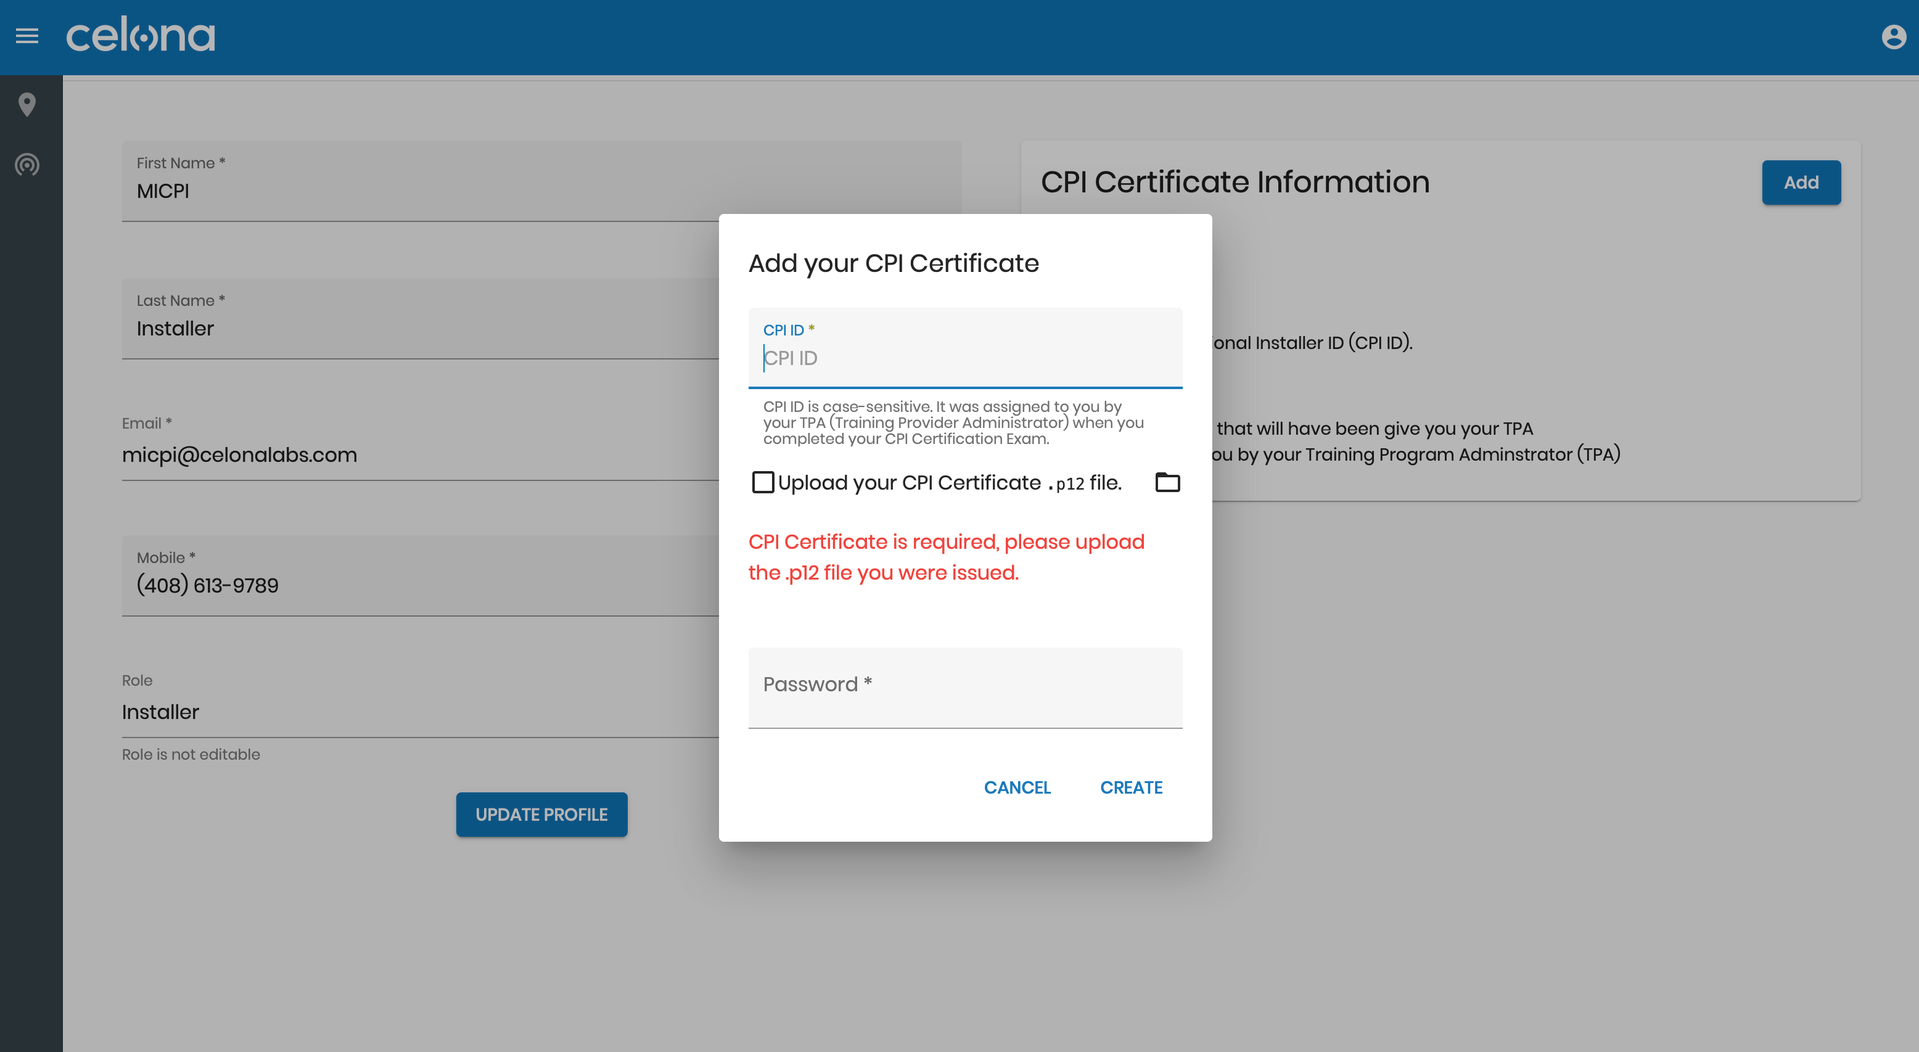 Adding CPI certificate within the Celona Orchestrator